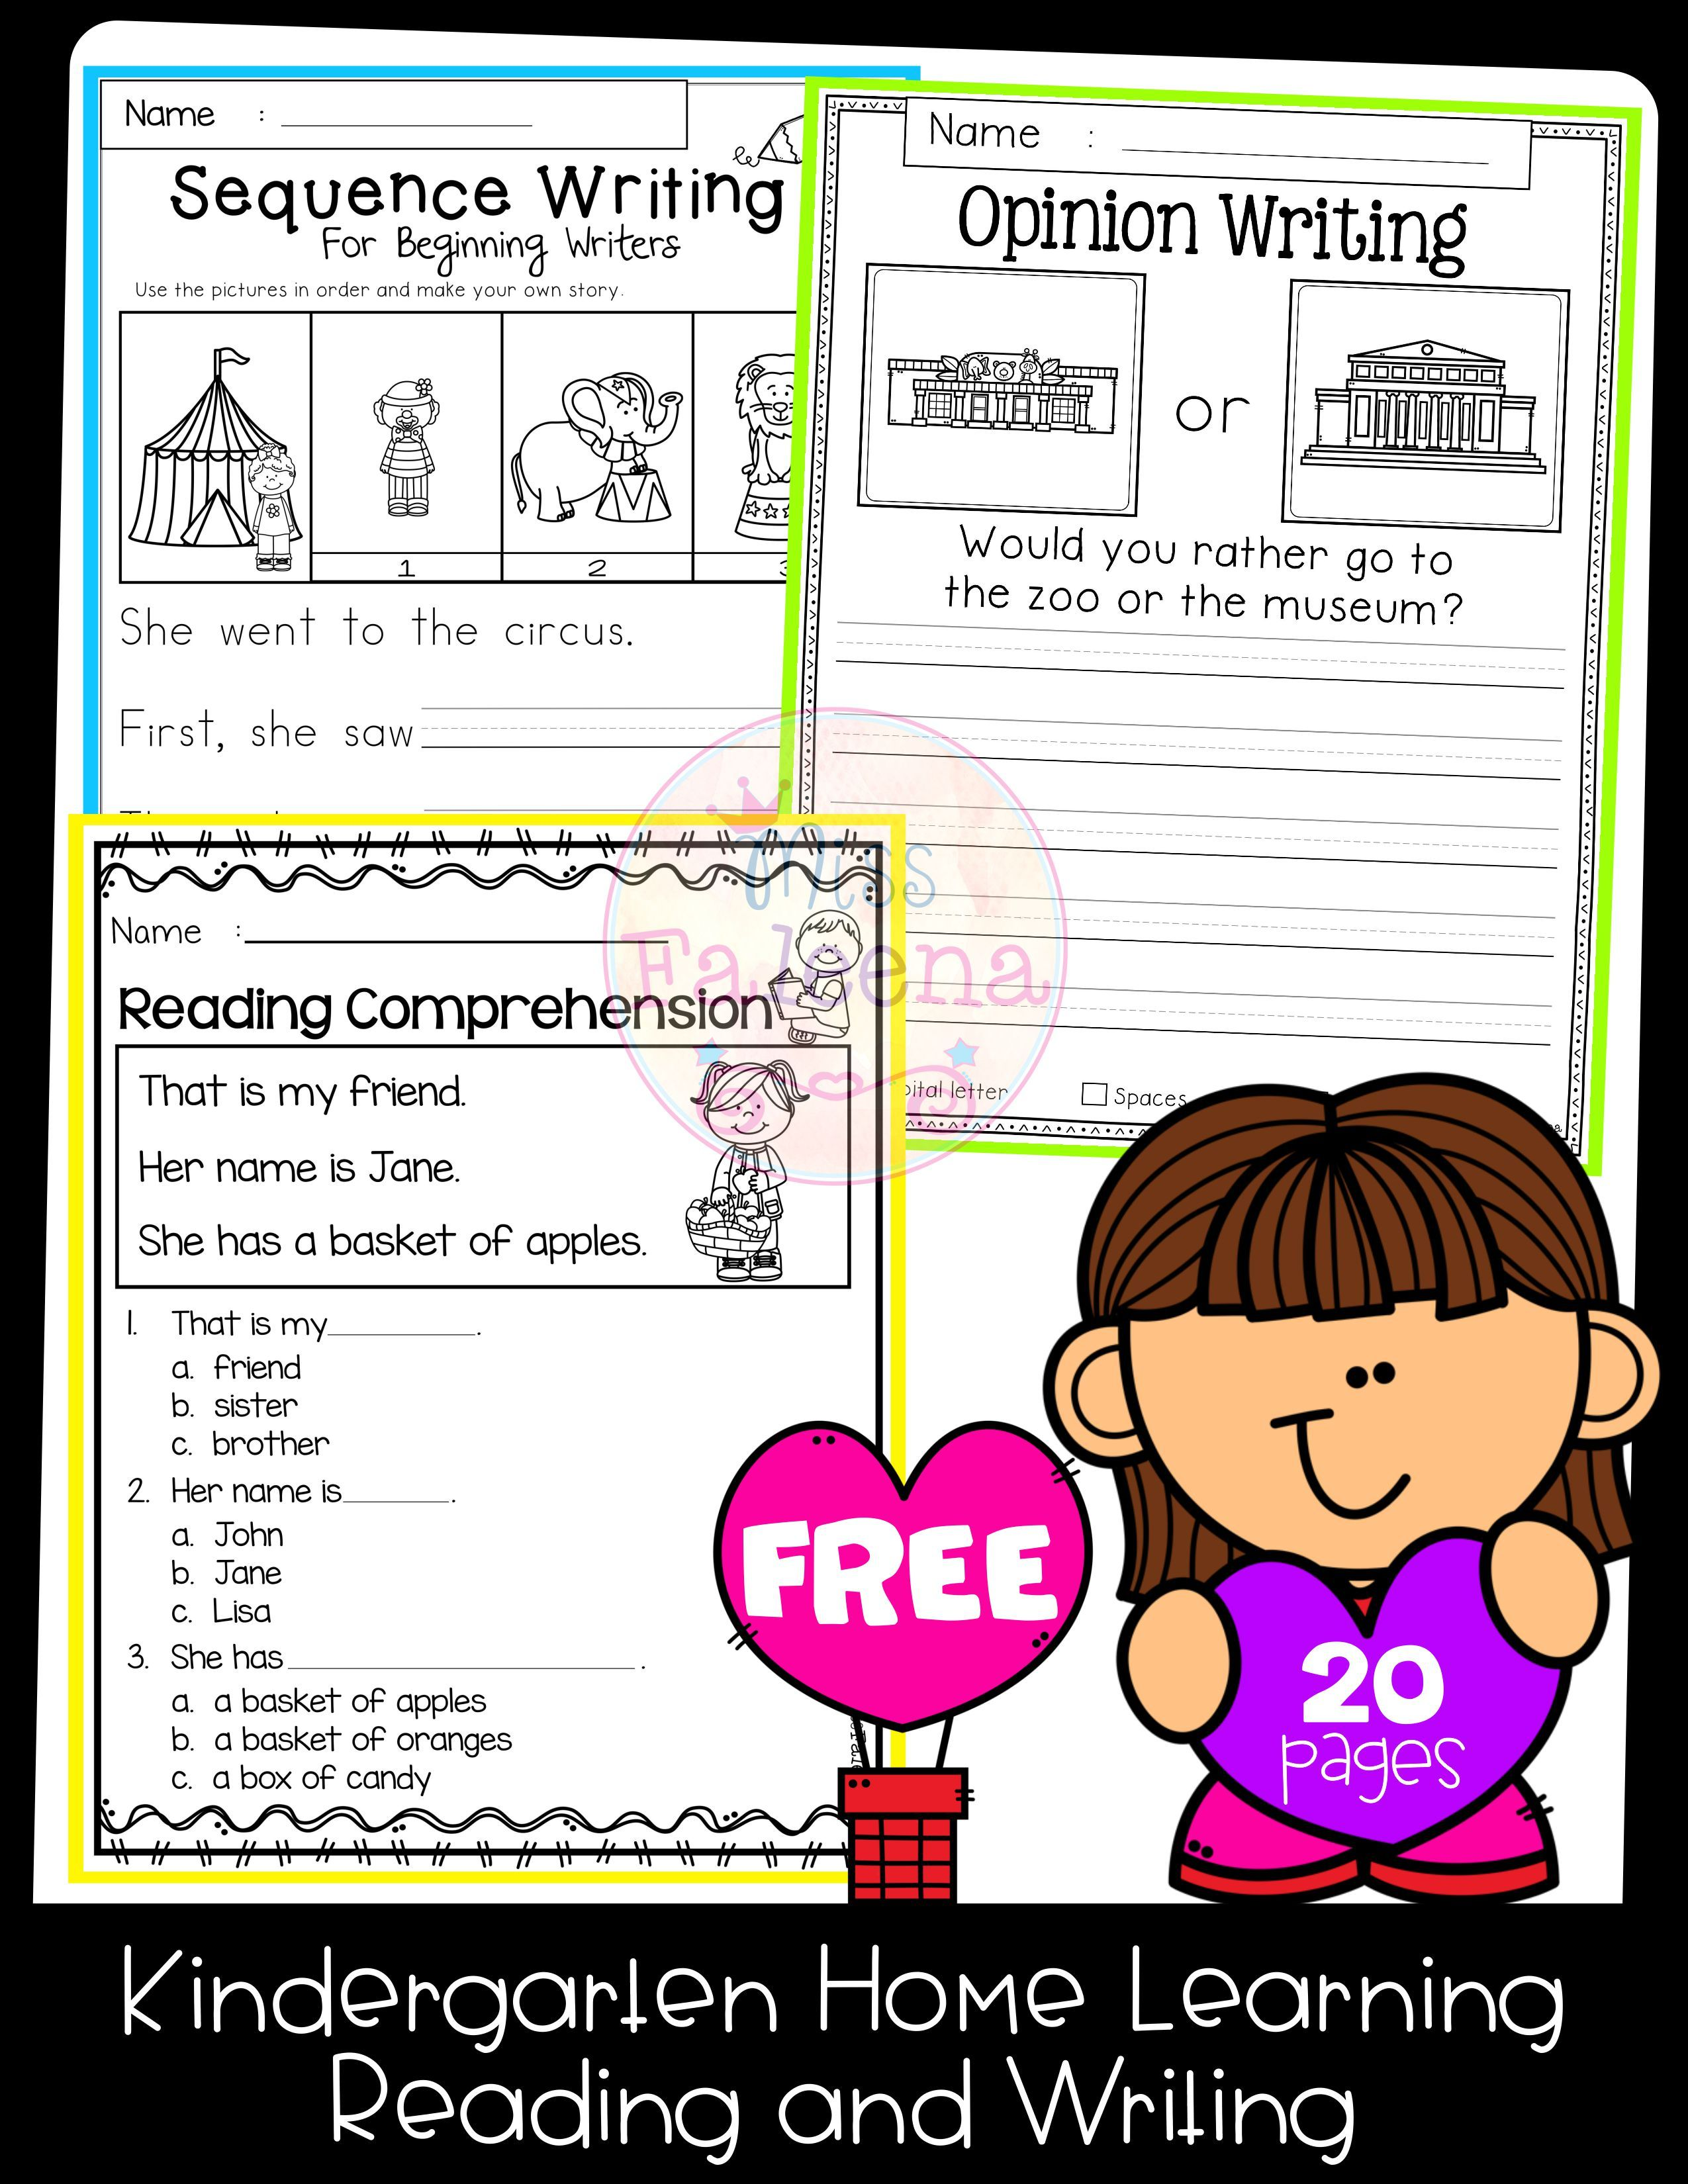 Free Kindergarten Home Learning Reading Comprehension Kindergarten Kindergarten Writing Kindergarten Lessons [ 3300 x 2550 Pixel ]